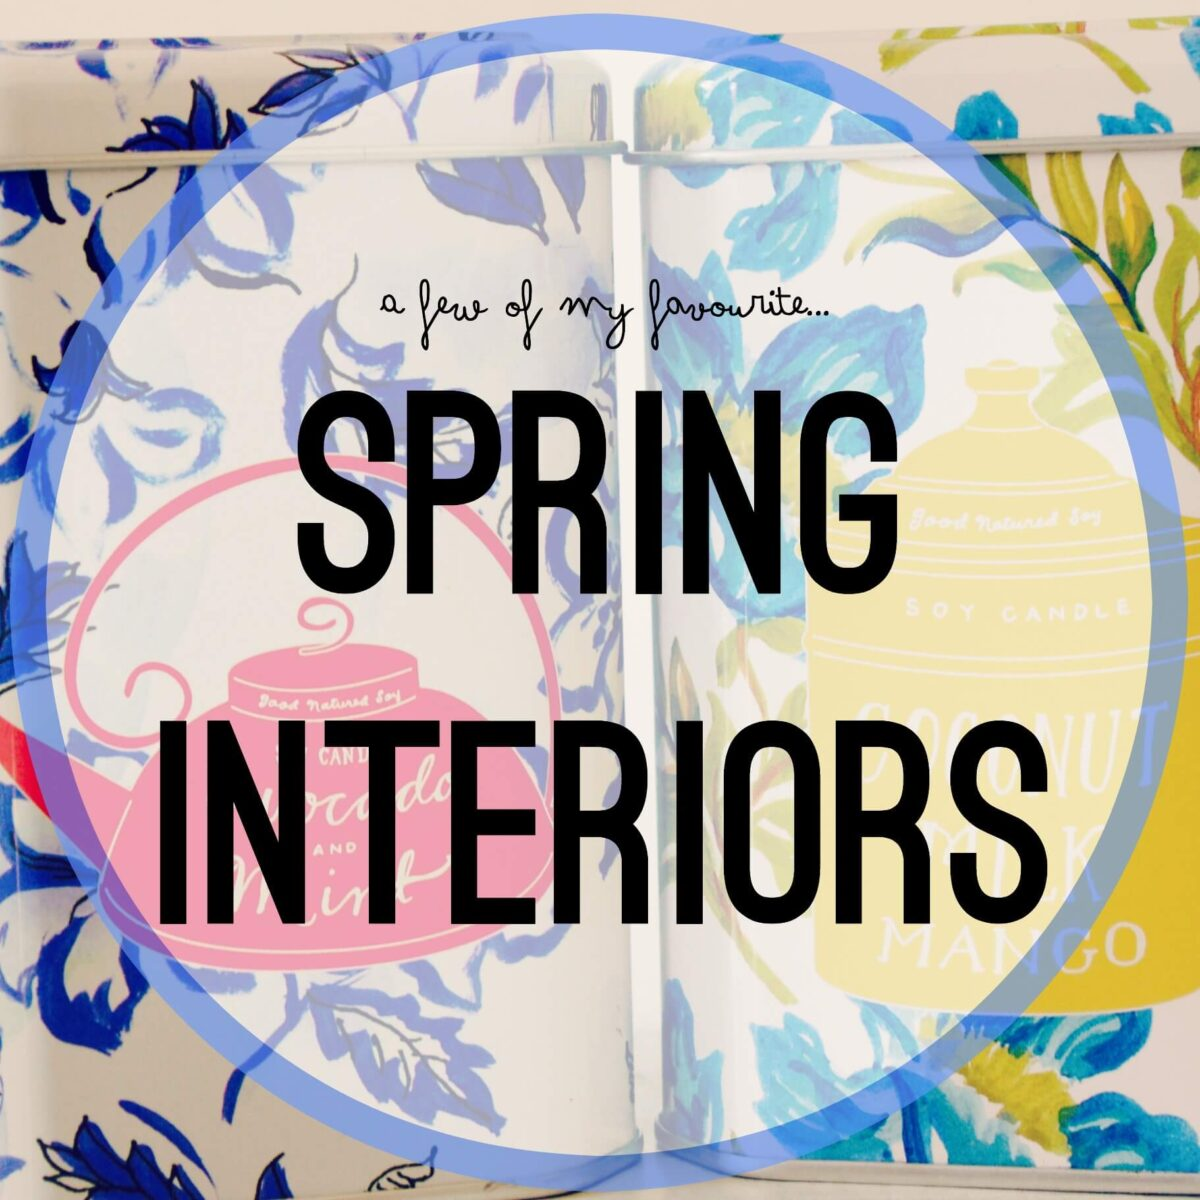 A few of my favourite things | Spring interiors